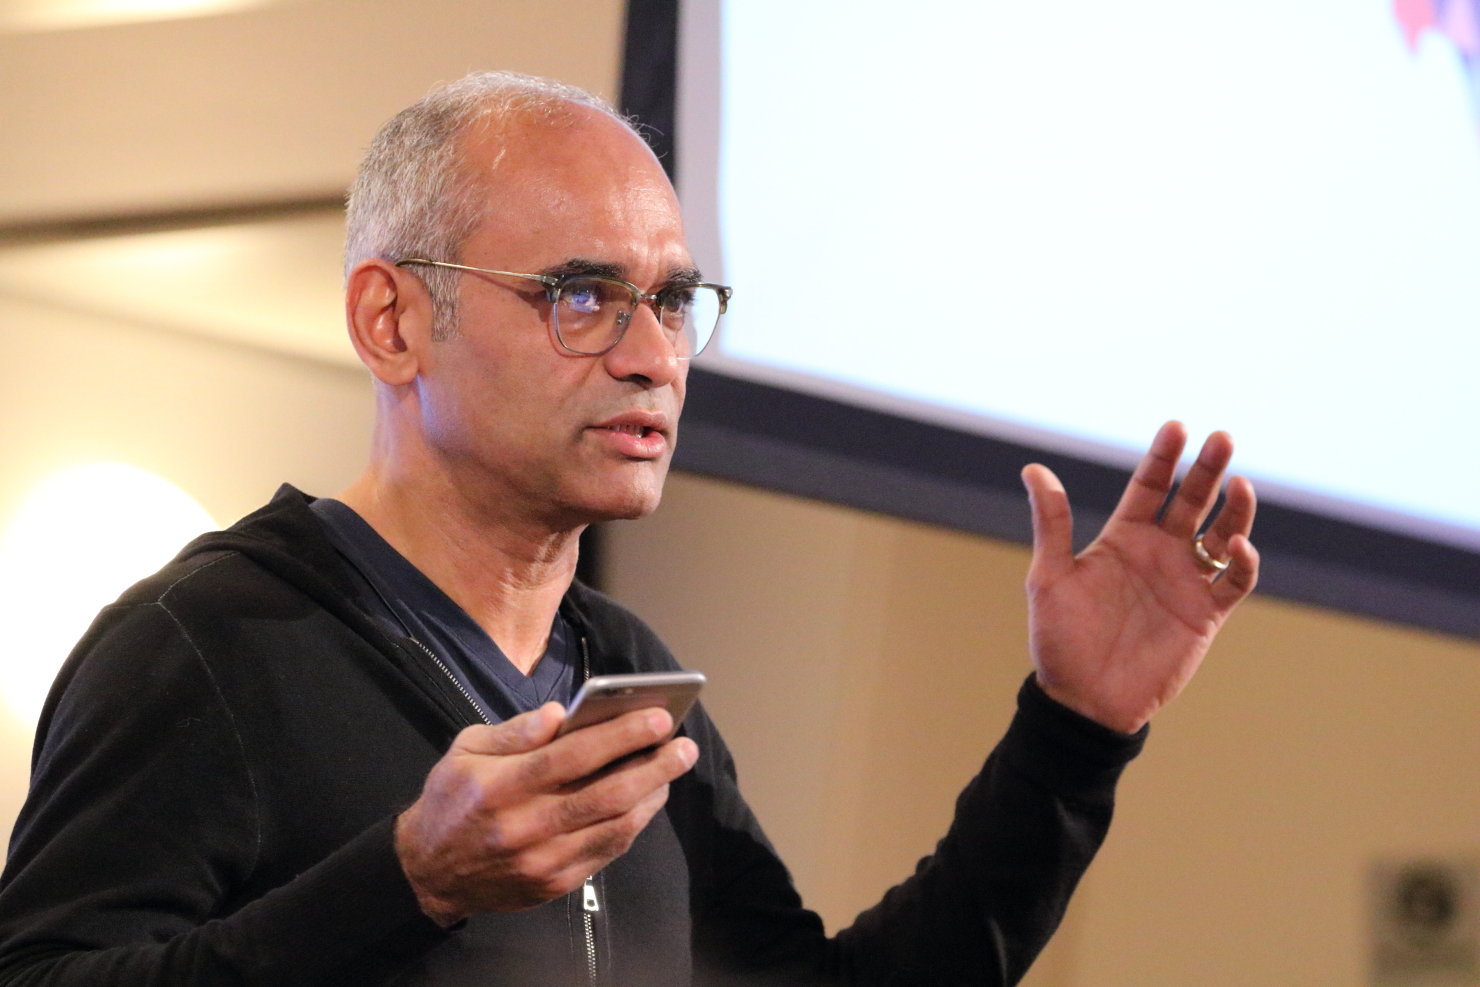 Starry founder and CEO Chet Kanojia